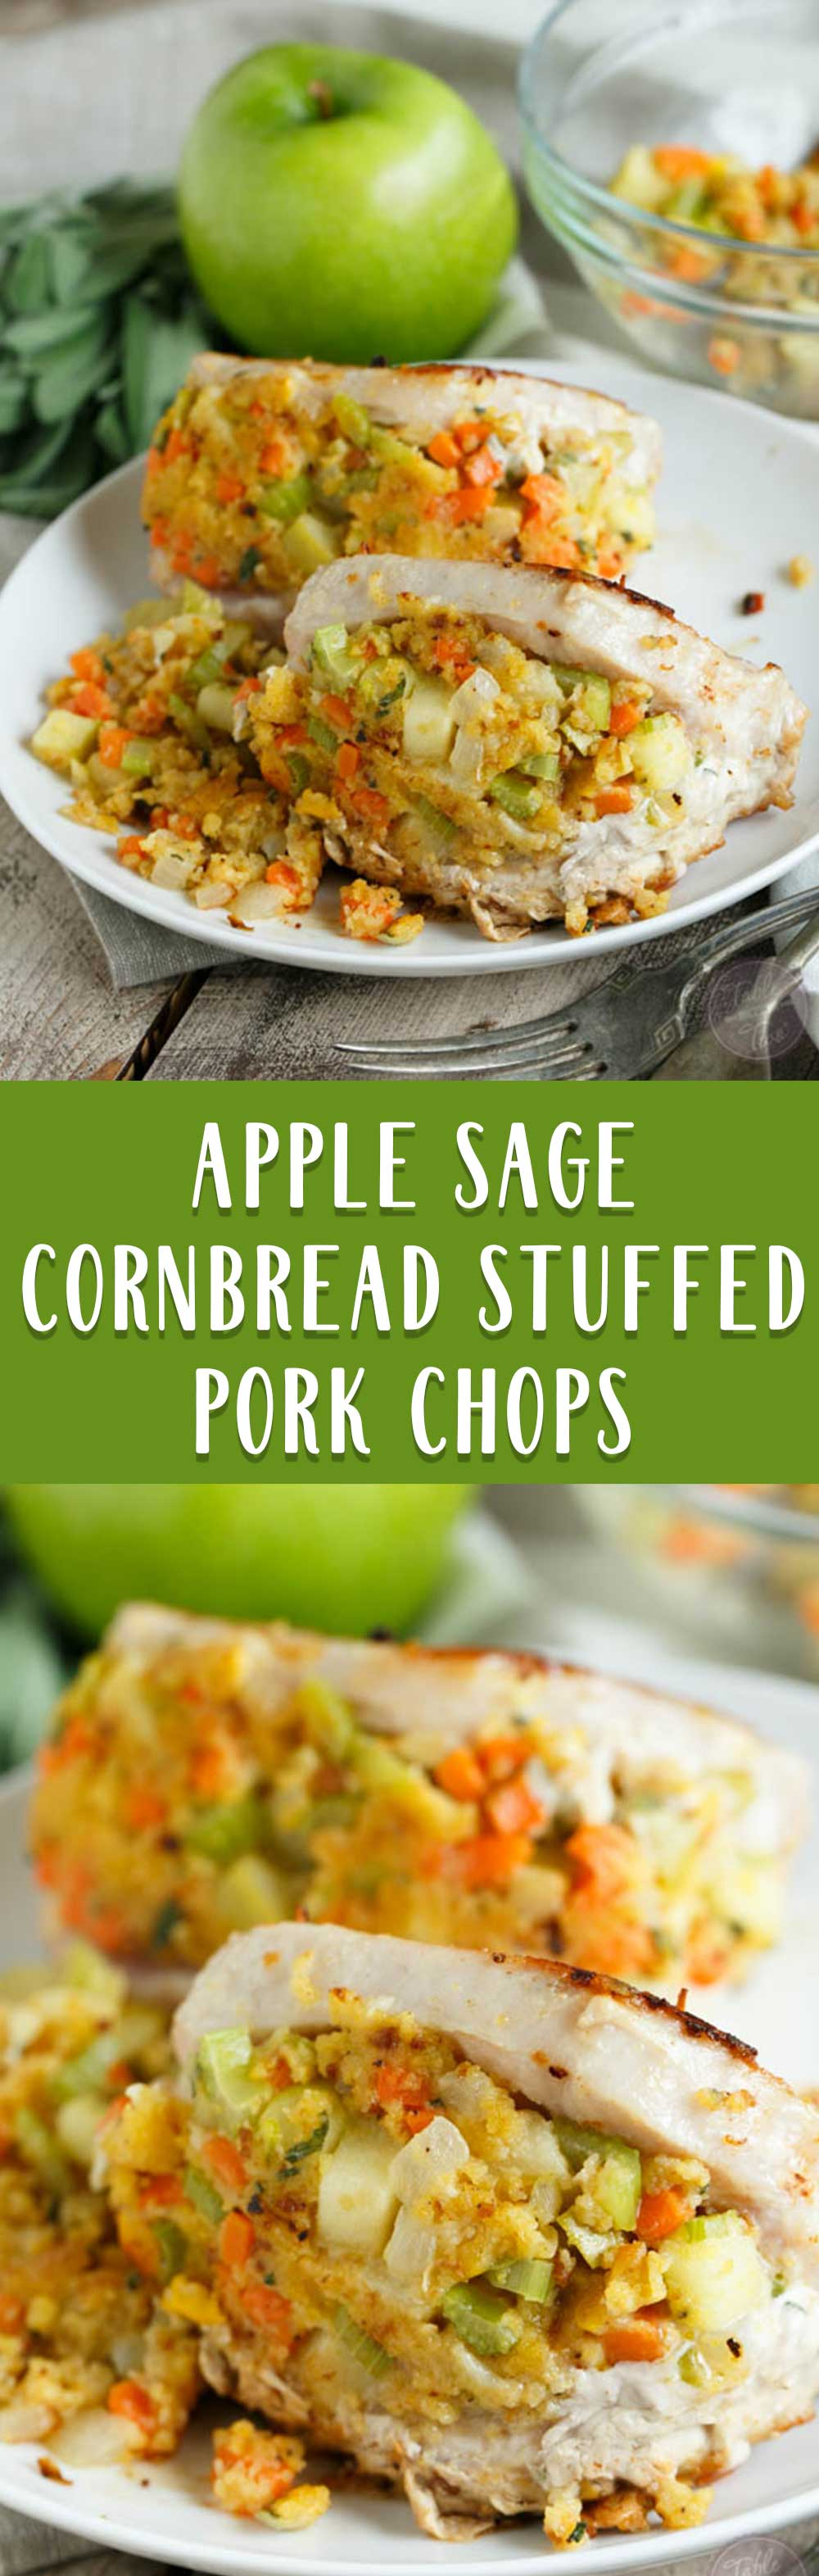 These apple sage cornbread stuffed pork chops are going to be a date-night favorite in your household. It's perfectly portioned for two! Make it a date-night in and make this wonderful dish that is sure to keep your bellies full!